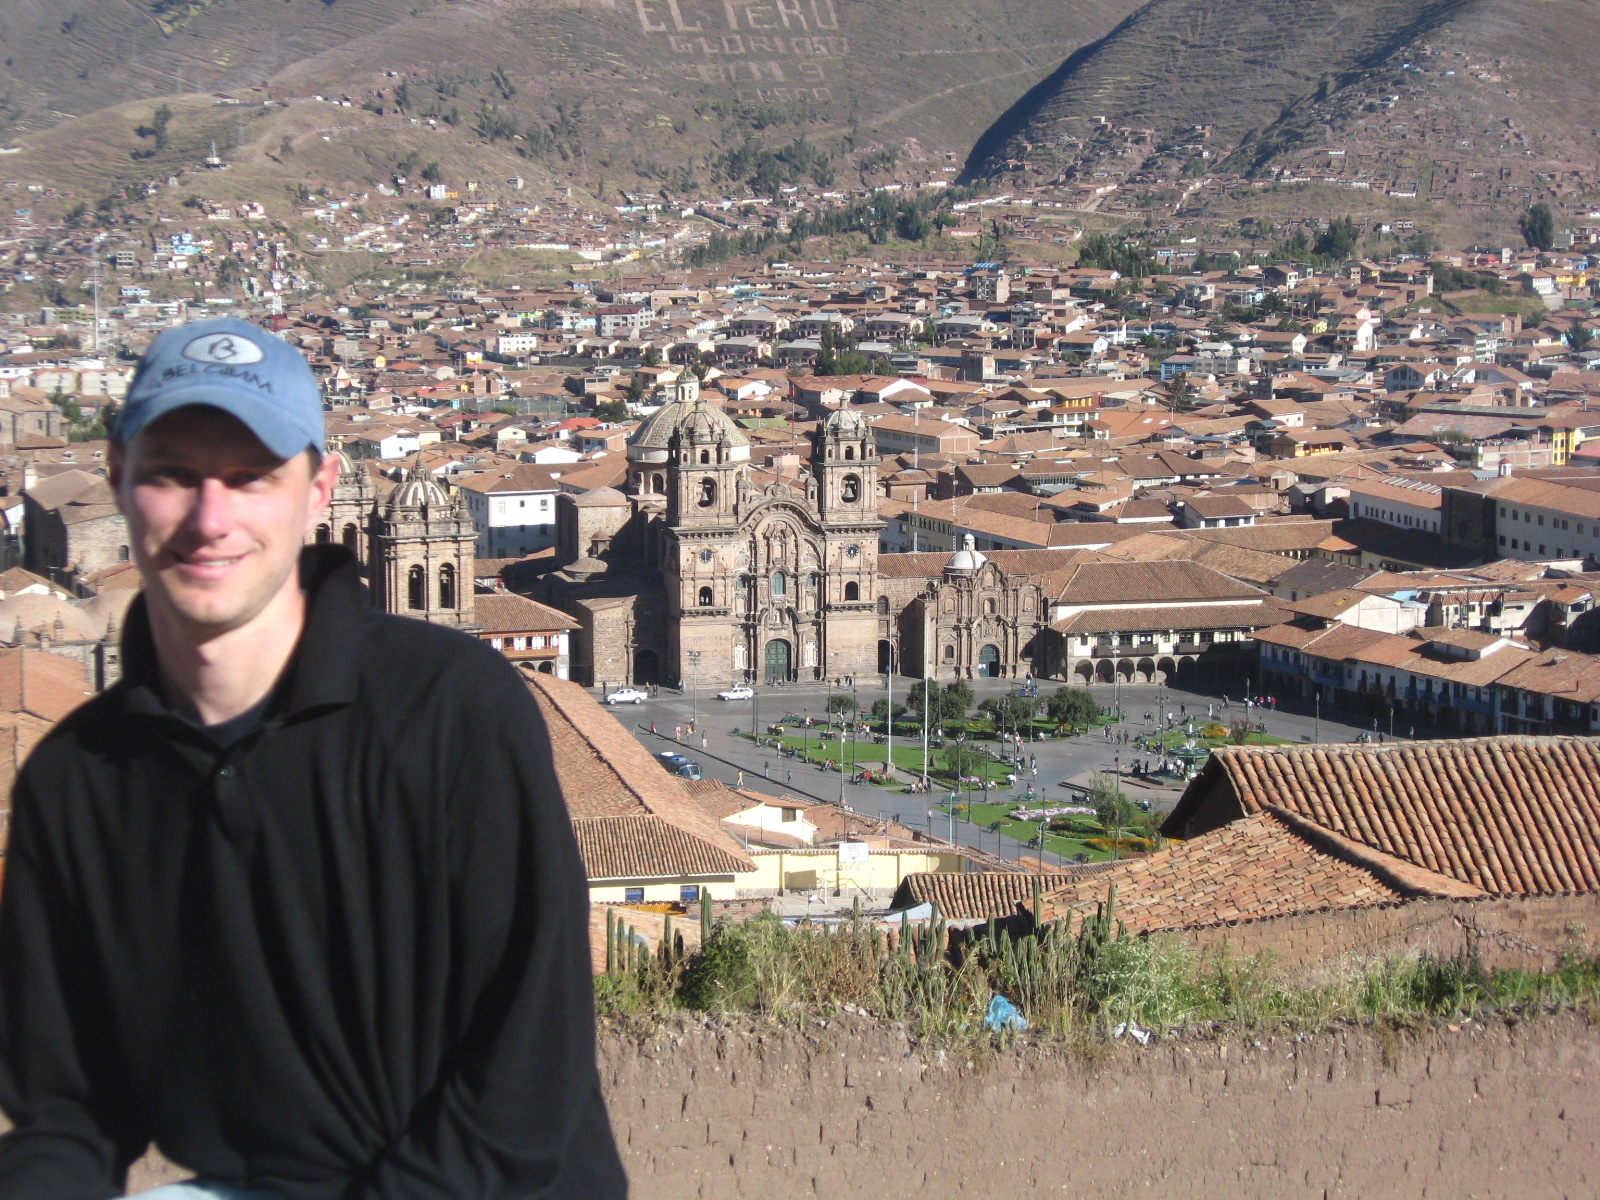 Ward Welvaert, overlooking the Plaza de Armas in Cusco, Peru.